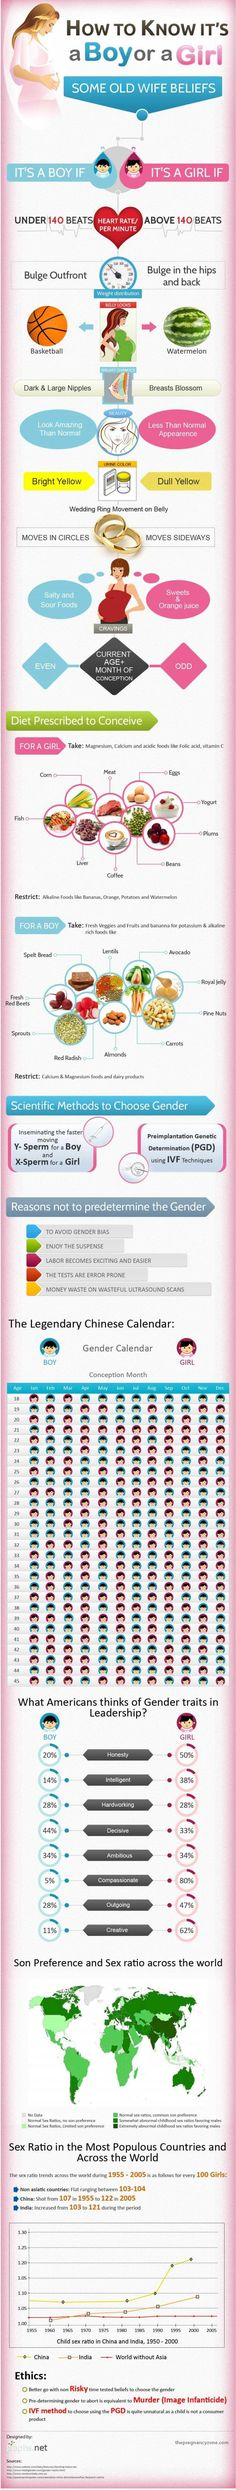 How To Know If You Are Having a Boy or a Girl - Gender Facts With Pregnancy Mostly wrong for me... 6 showed girl  4 (including chinese birth chart) showed boy... He's definitely a boy!